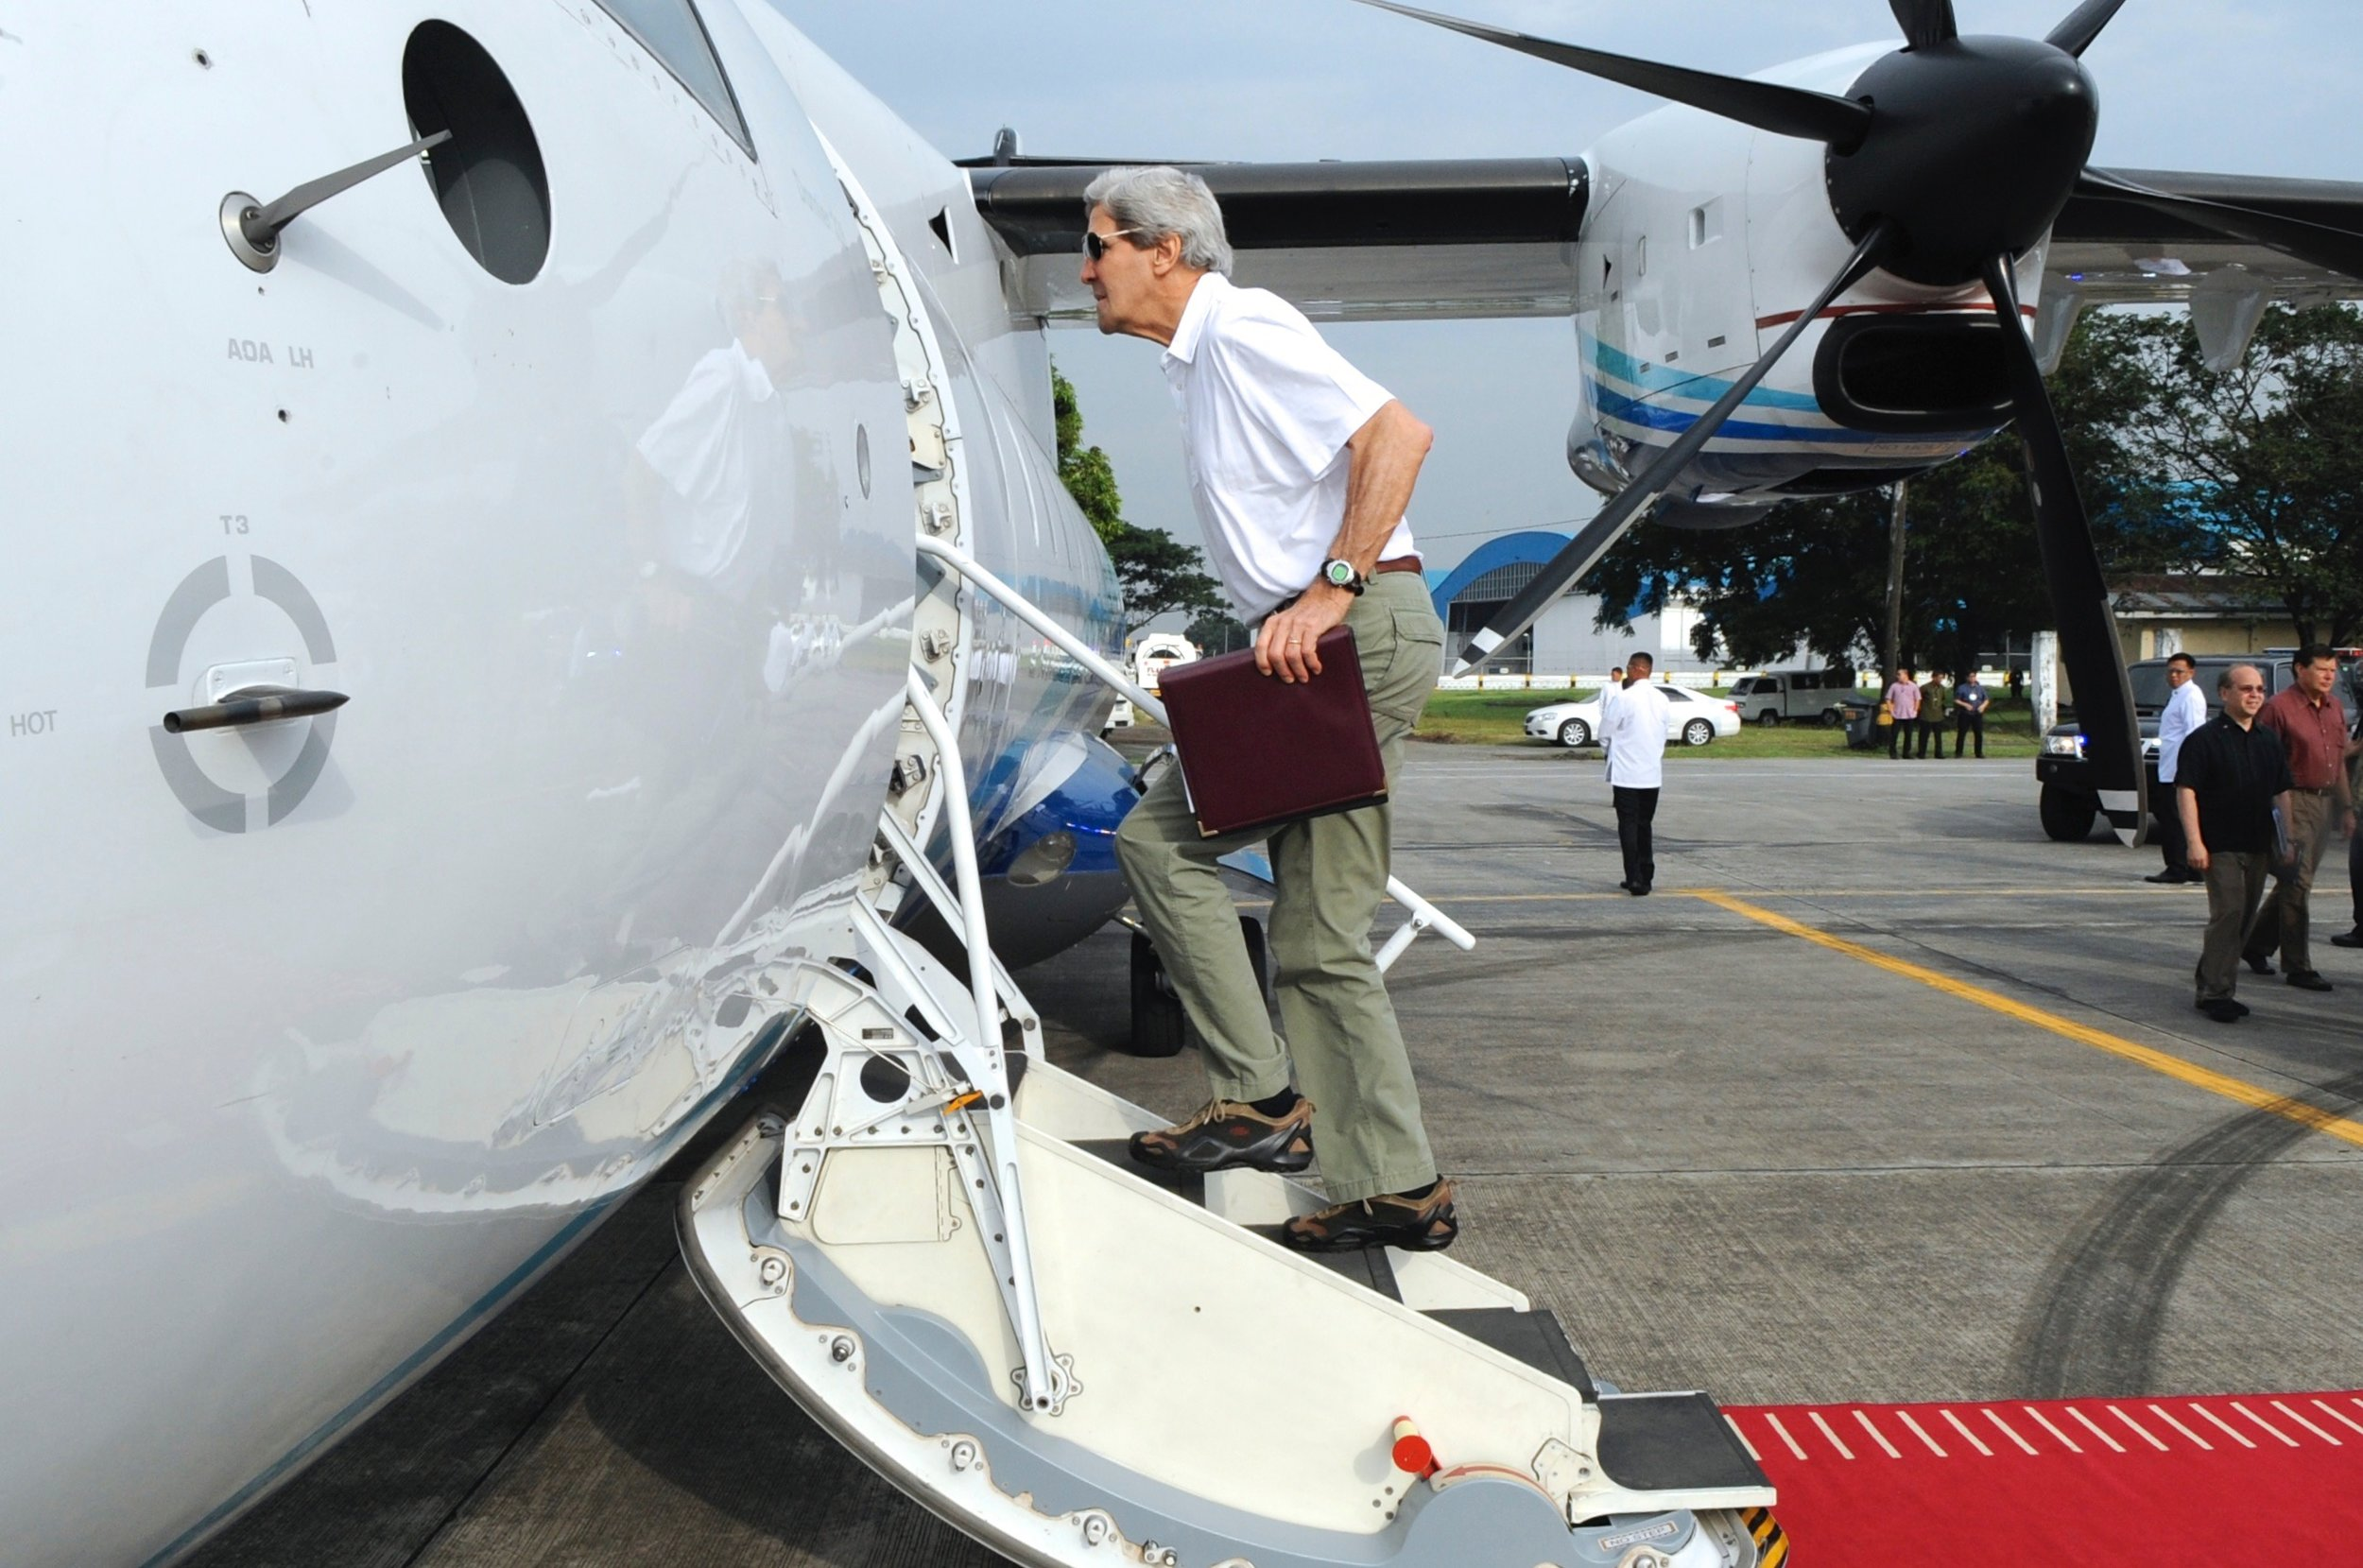 Secretary Kerry boarding a propeller plane for our first trip to the Mekong River.